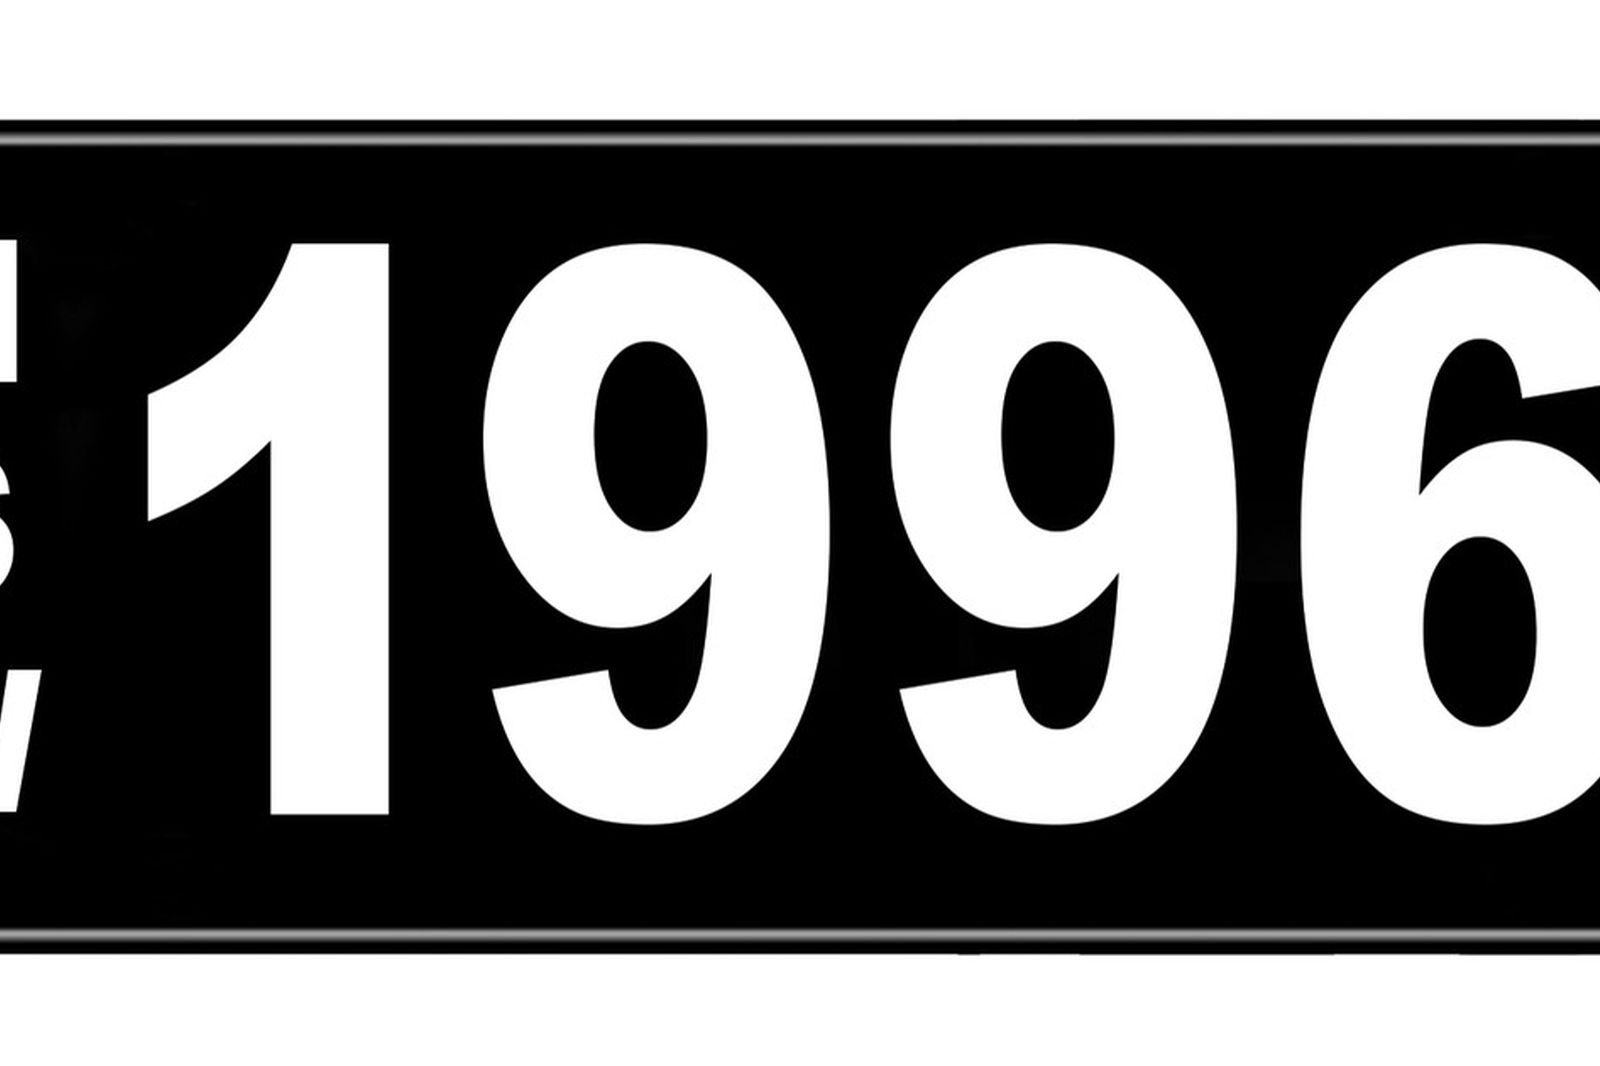 sold number plates nsw numerical number plates 1996 auctions